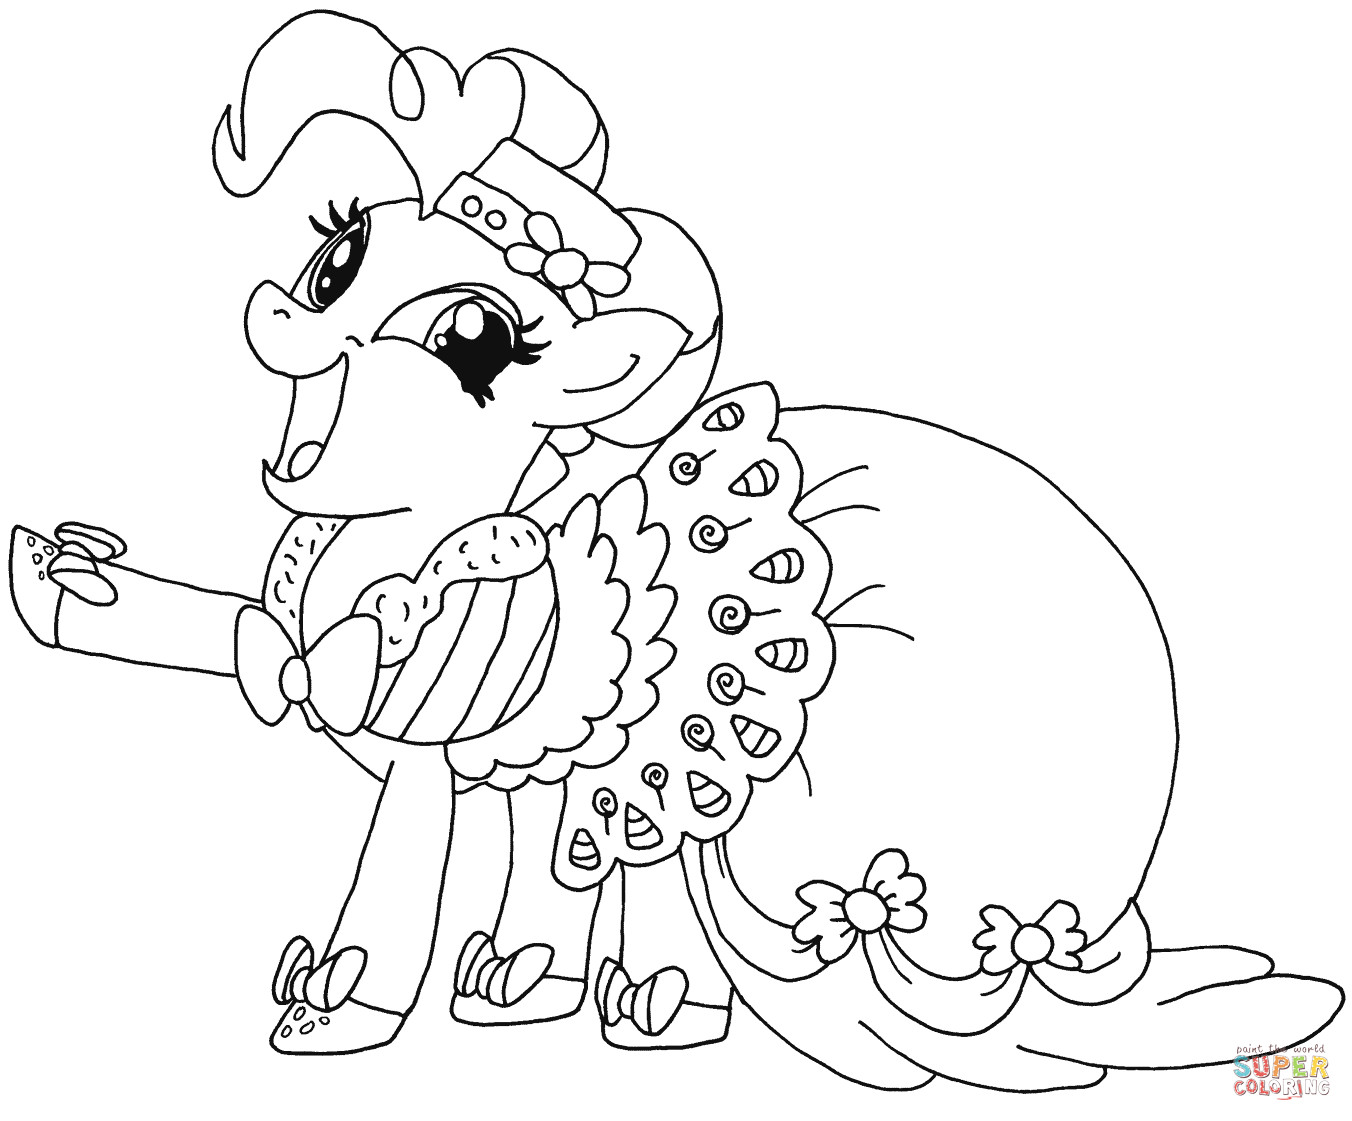 Best ideas about Pinky Pie Coloring Pages For Girls . Save or Pin My Little Pony Pinkie Pie coloring page Now.